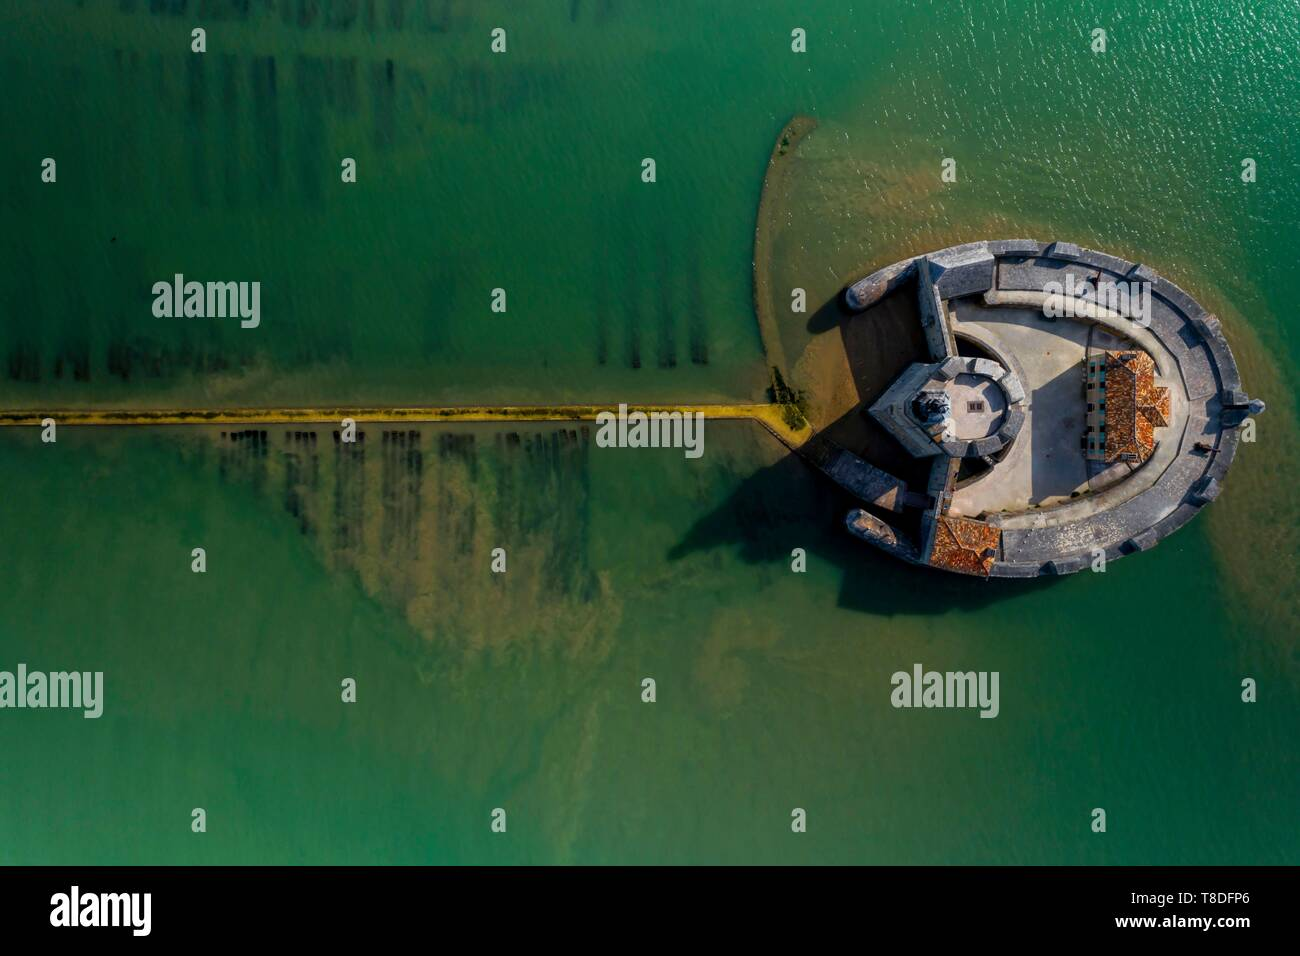 France, Charente-Maritime, Bourcefranc-le-Chapus, Fort Louvois, the construction of Fort Louvois or fort Chapus was conducted from 1691 to 1694 according to the principles of military architecture redefined by Vauban (aerial view) (aerial view) - Stock Image